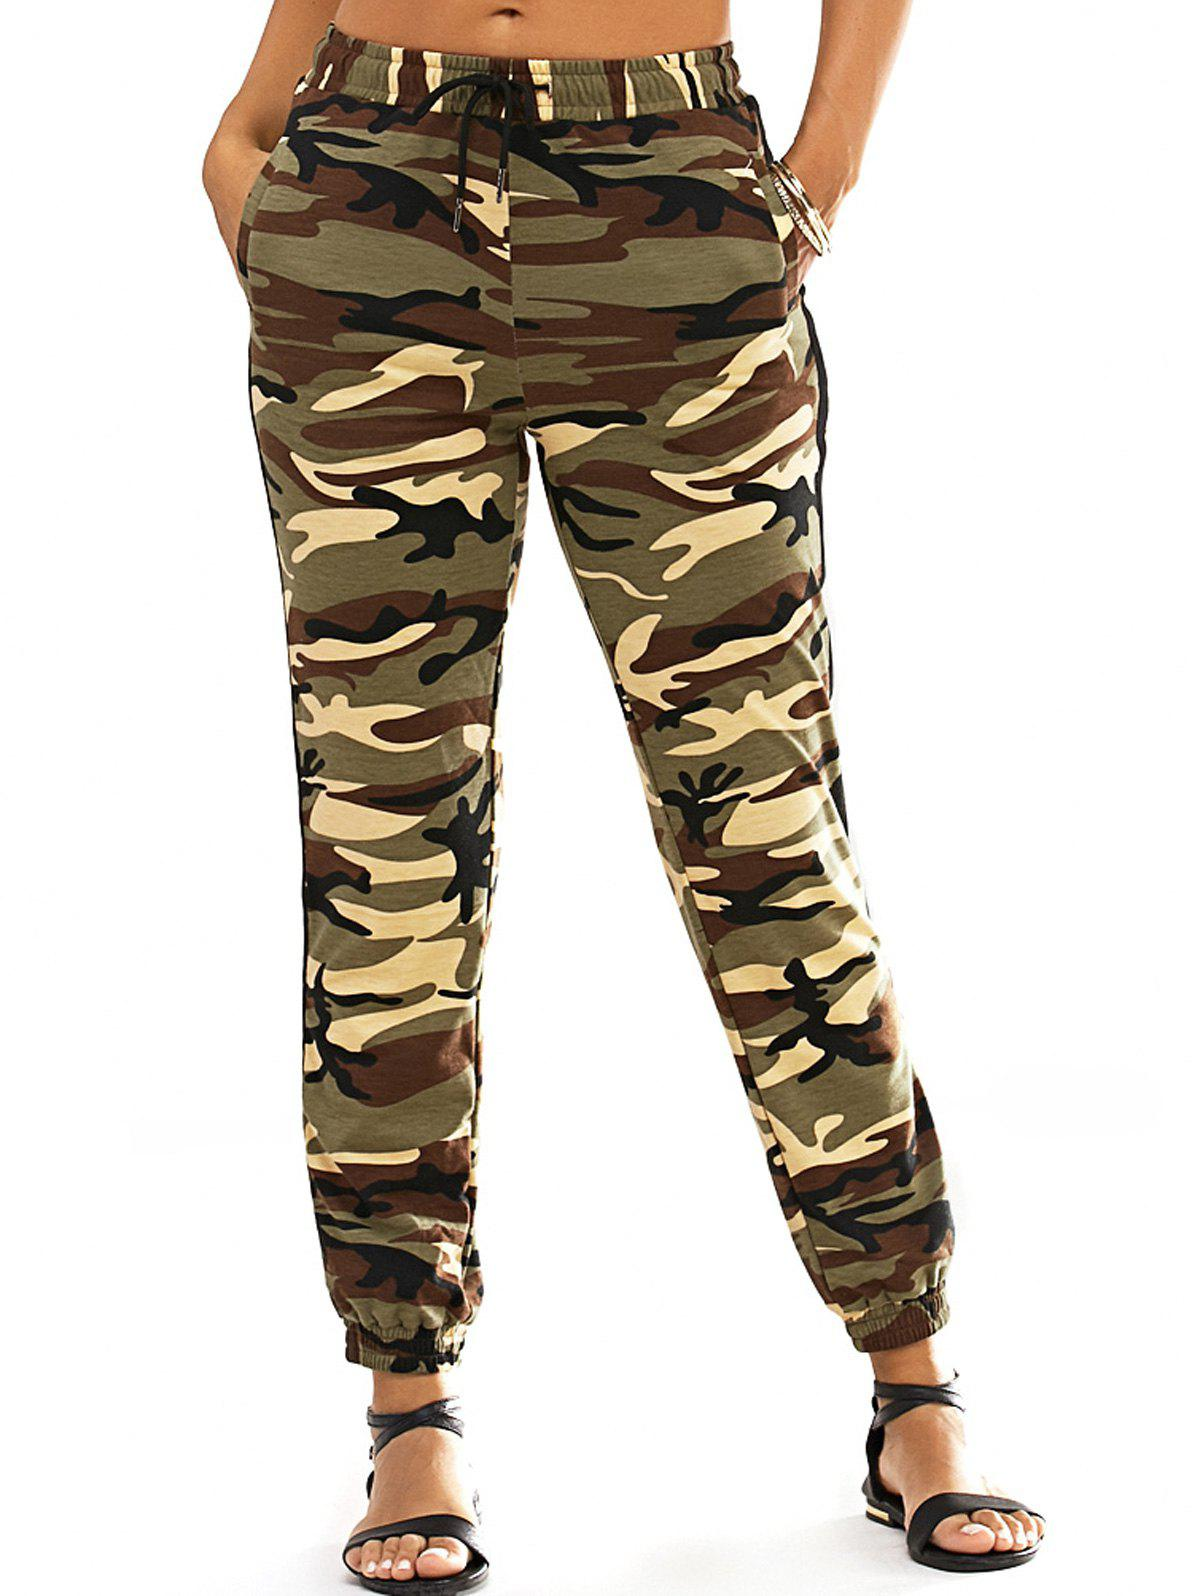 Fashionable Narrow Feet Lace-Up Camo Print Women's Pants - ARMY GREEN CAMOUFLAGE XL